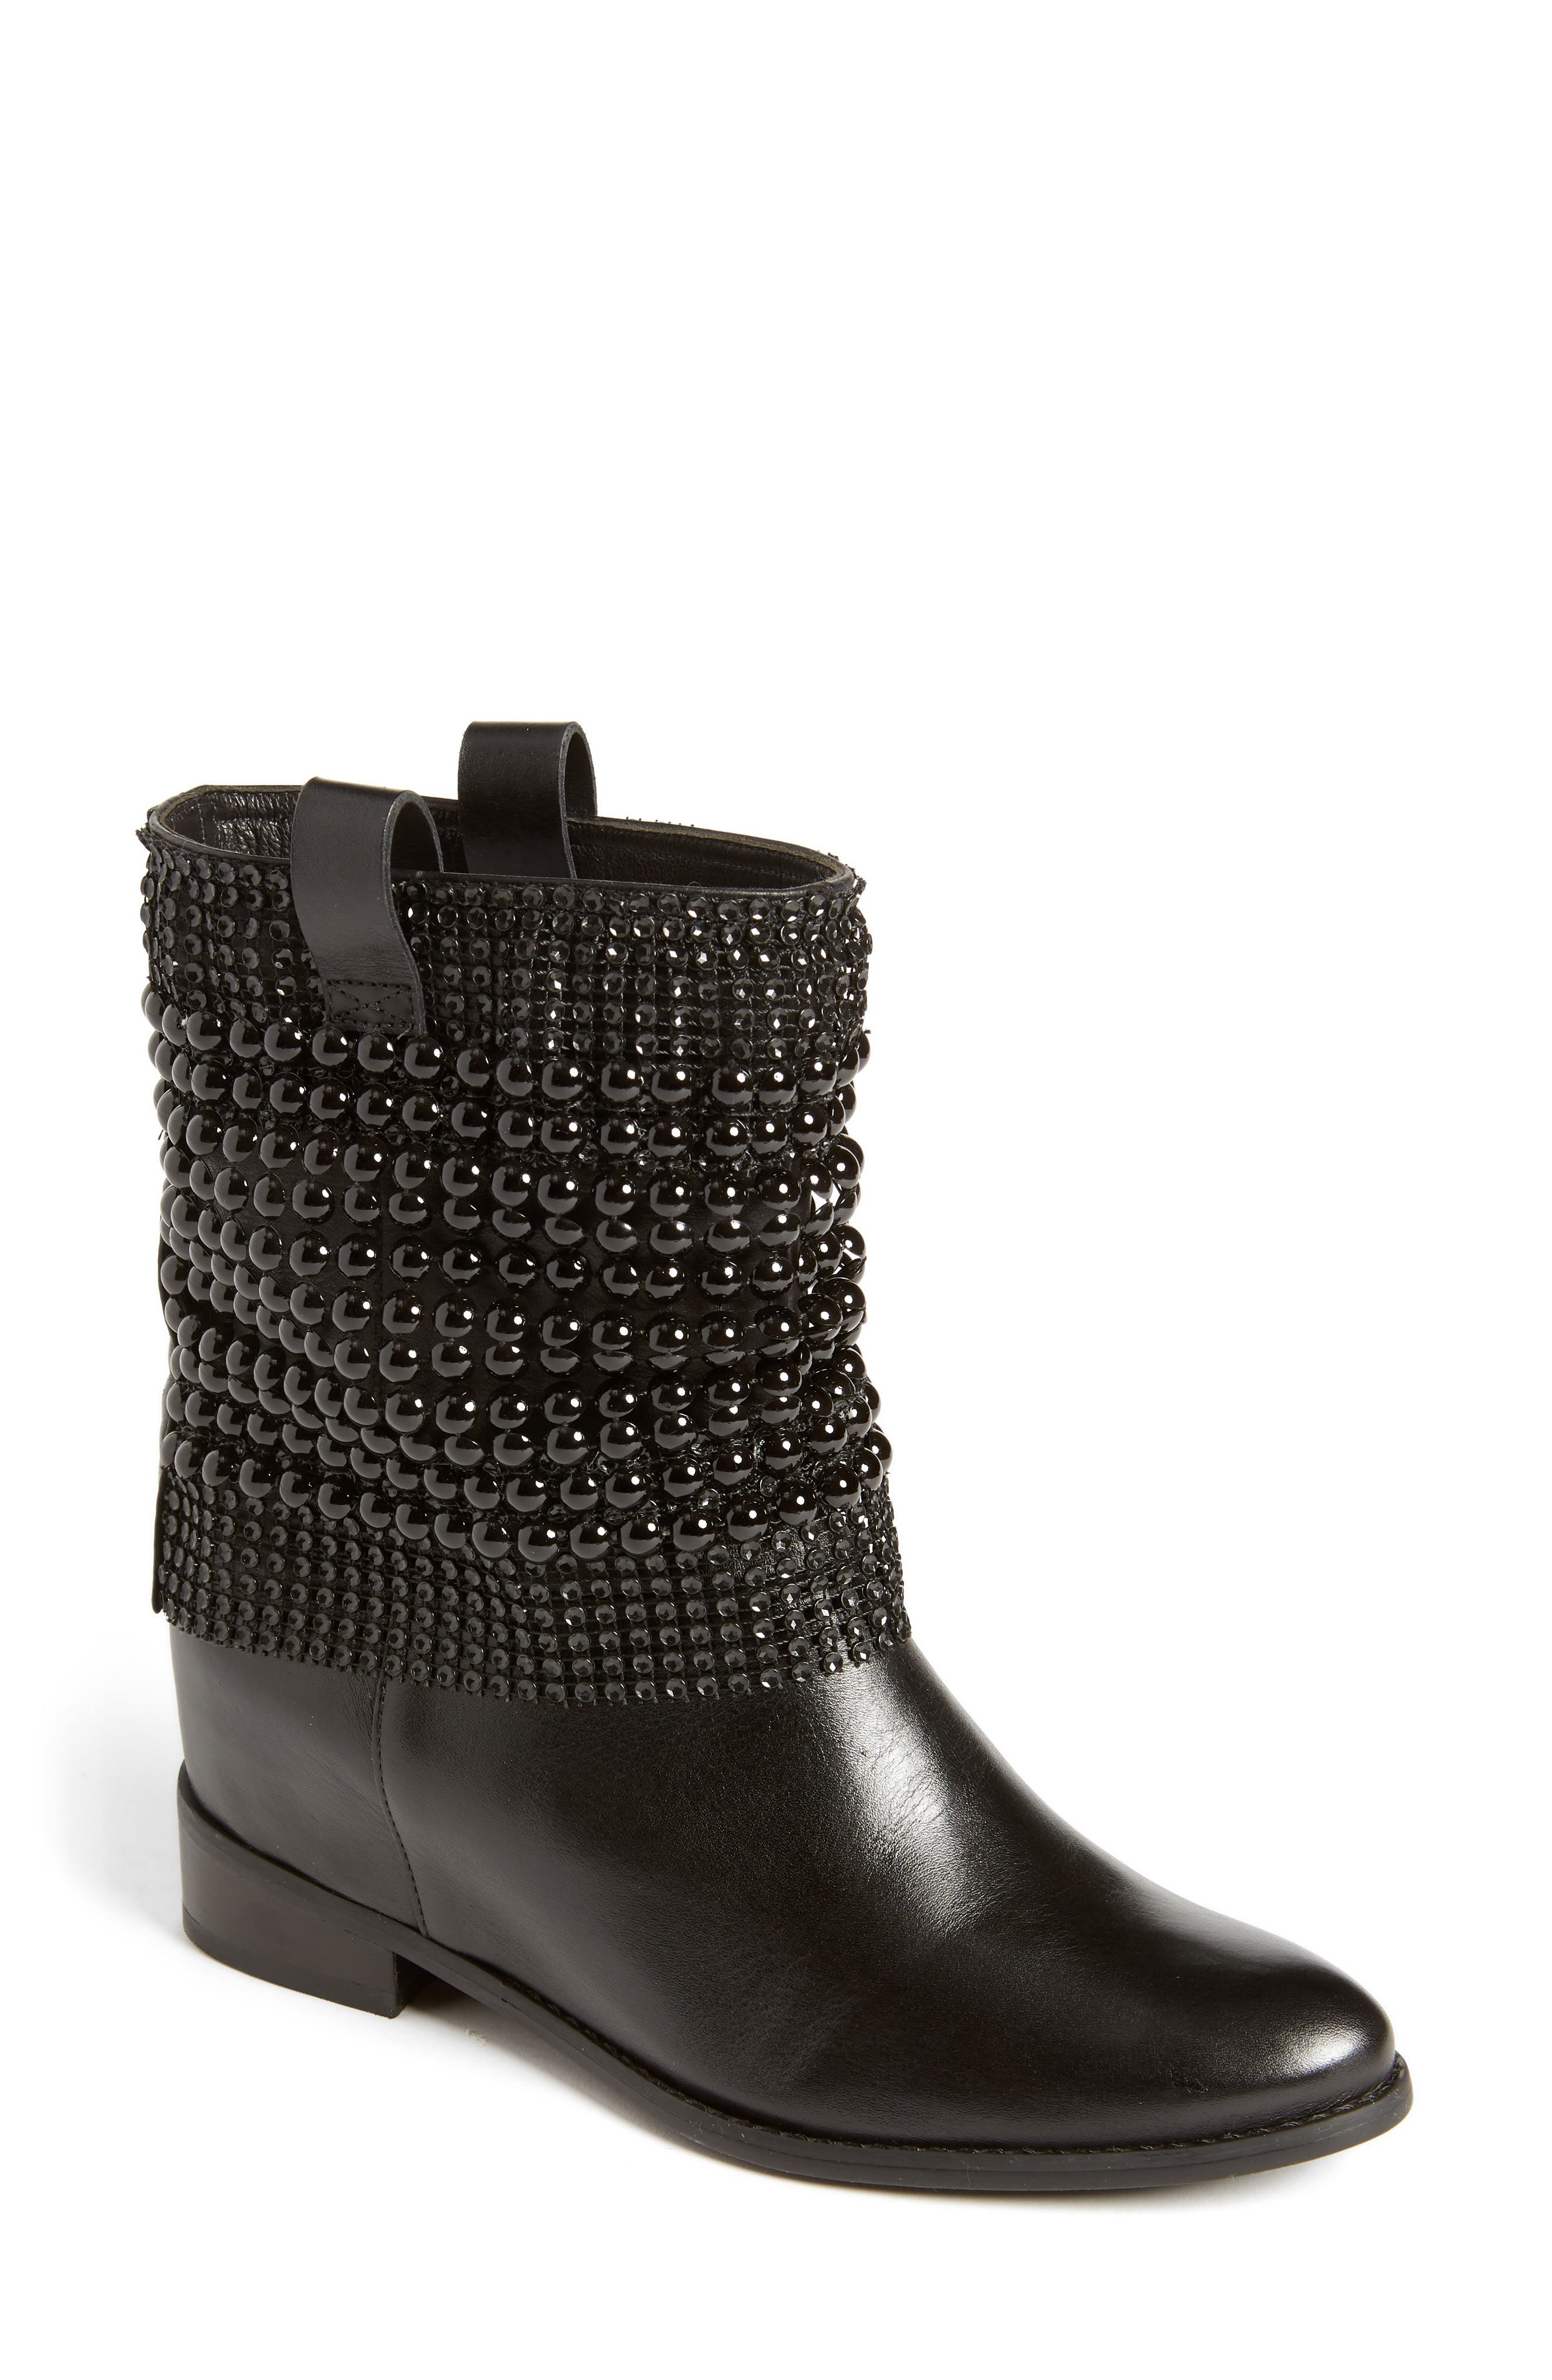 ANNIK HIDDEN WEDGE BOOT